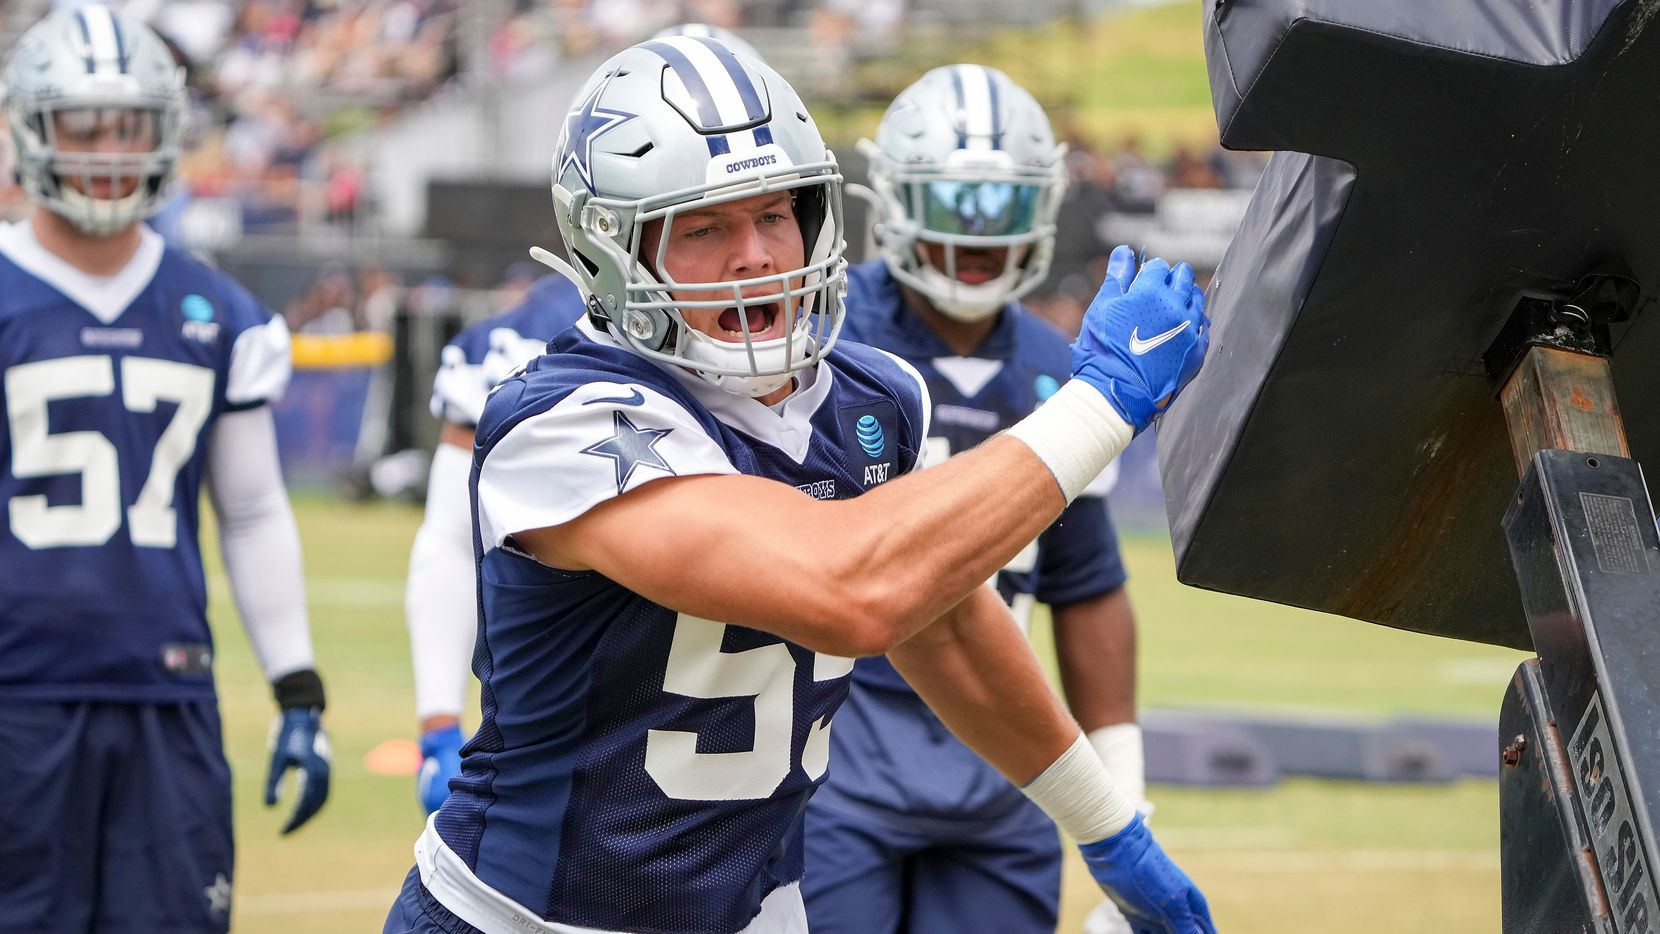 Dallas Cowboys linebacker Leighton Vander Esch (55) runs a drill during a practice at training camp on Tuesday, July 27, 2021, in Oxnard, Calif. (Smiley N. Pool/The Dallas Morning News)